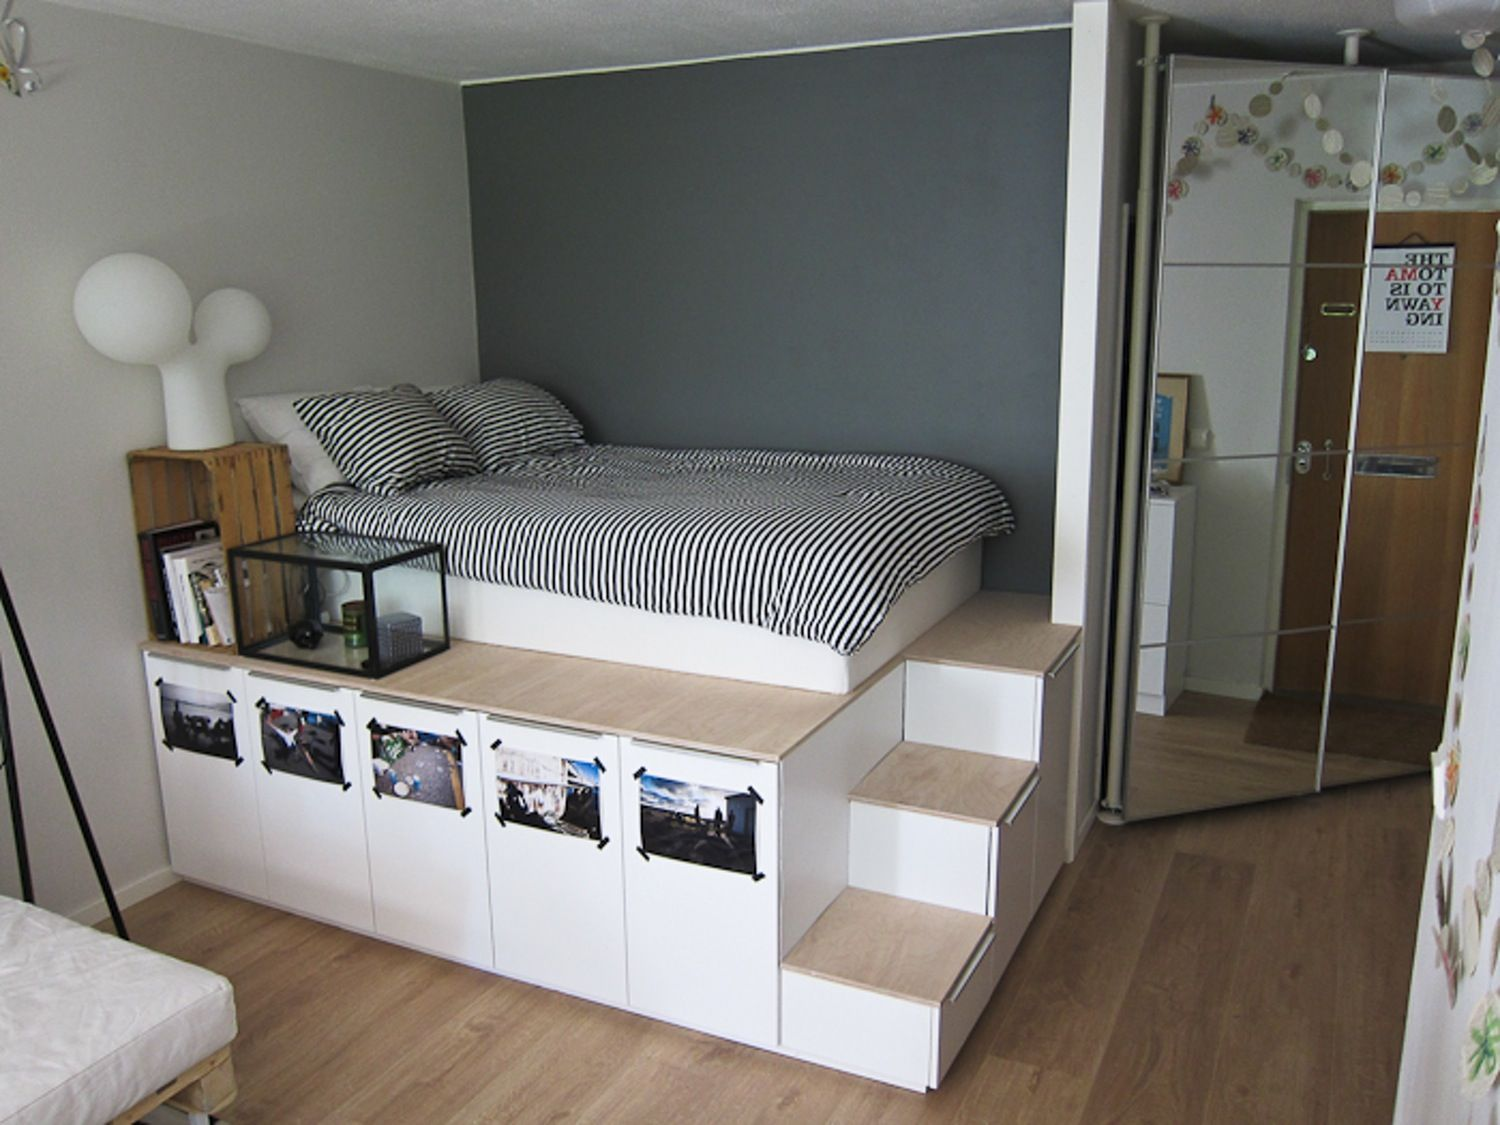 Smart Beds For Small Rooms Space Savers 11 Smart Bedroom Diys To Try Small Spaces